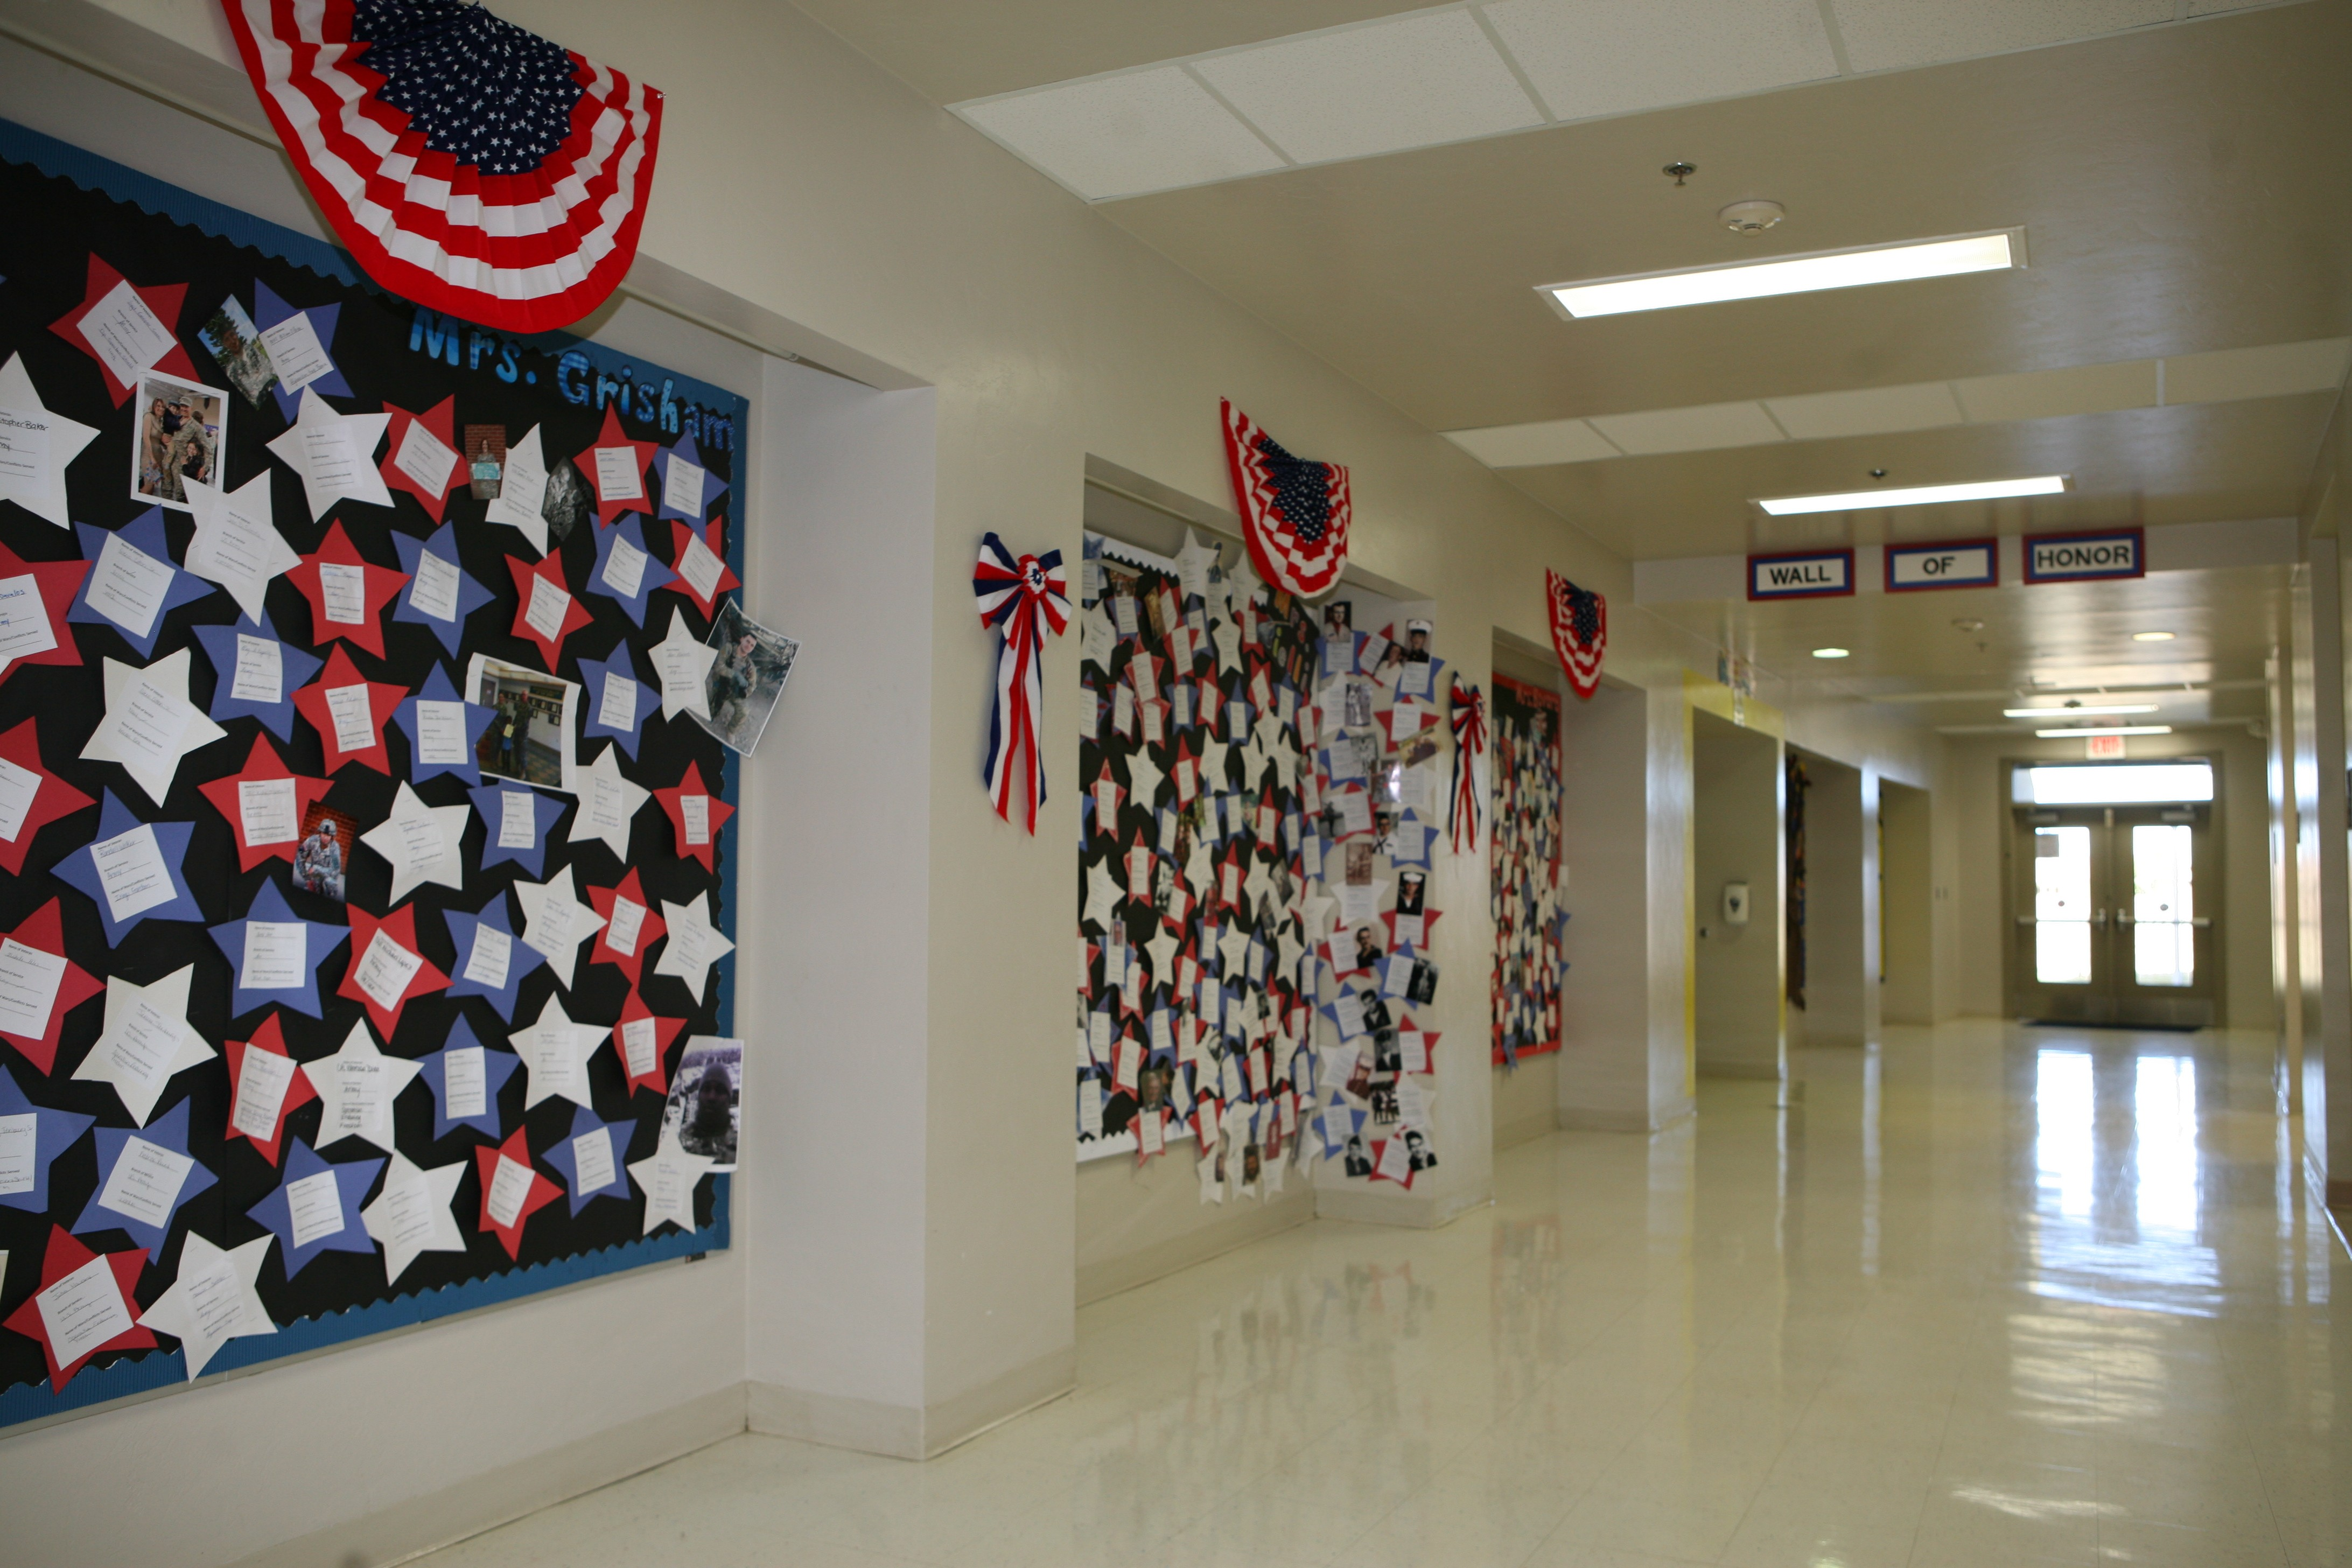 Second Grade Hosts Veterans Day Celebration At Fh School